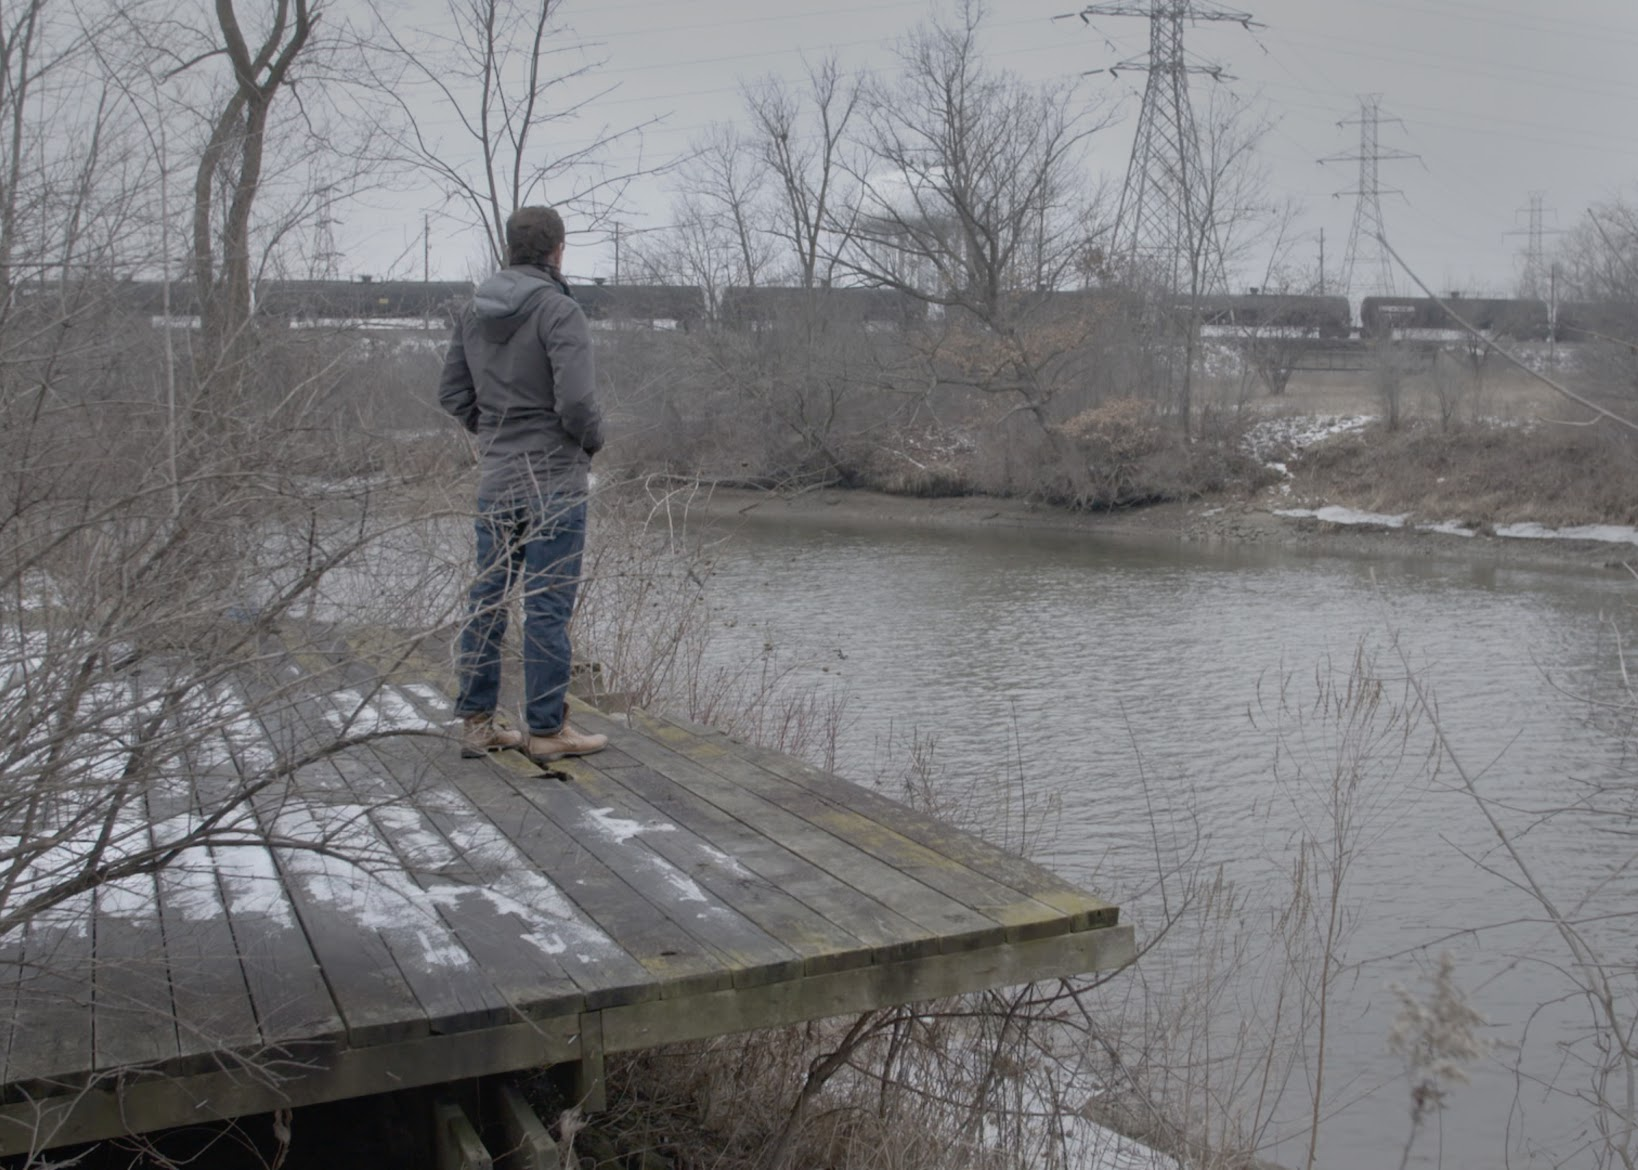 Cullen Hoback's documentary  What Lies Upstream  investigates the contamination of a local drinking water supply in West Virginia.